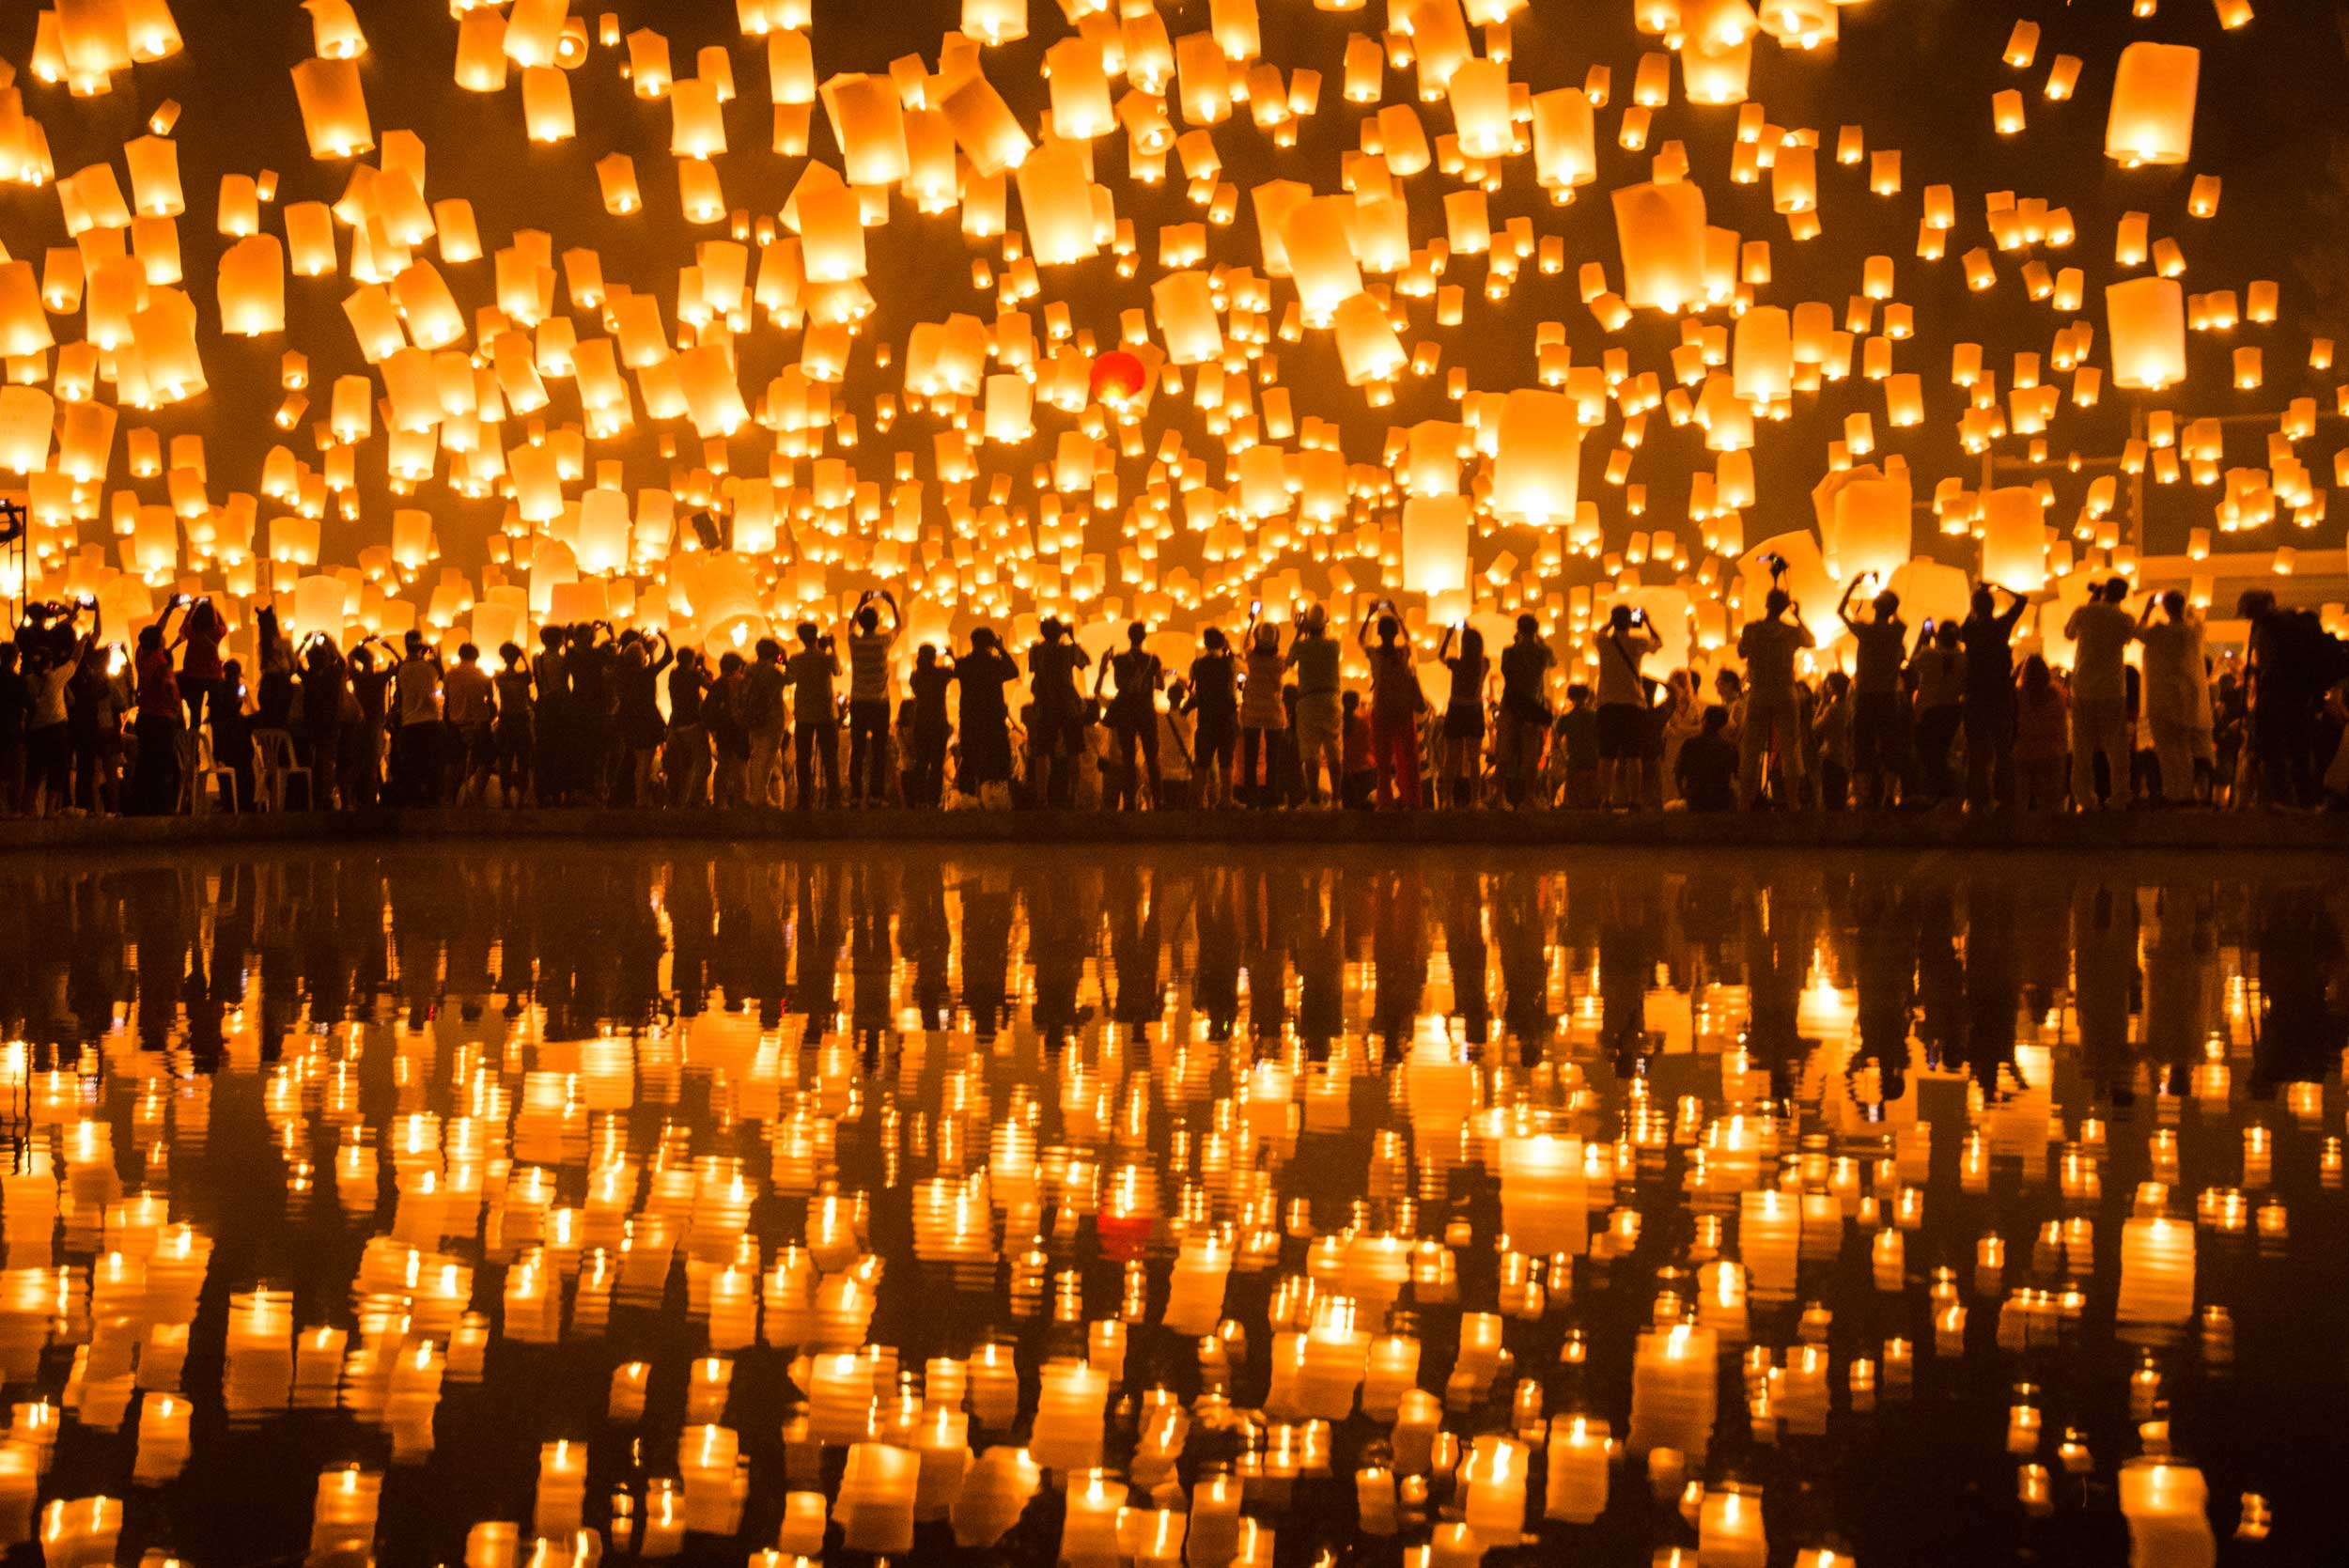 A sea of candlelit lanterns rising above a crowd and simultaneously reflected in the water below, Thailand